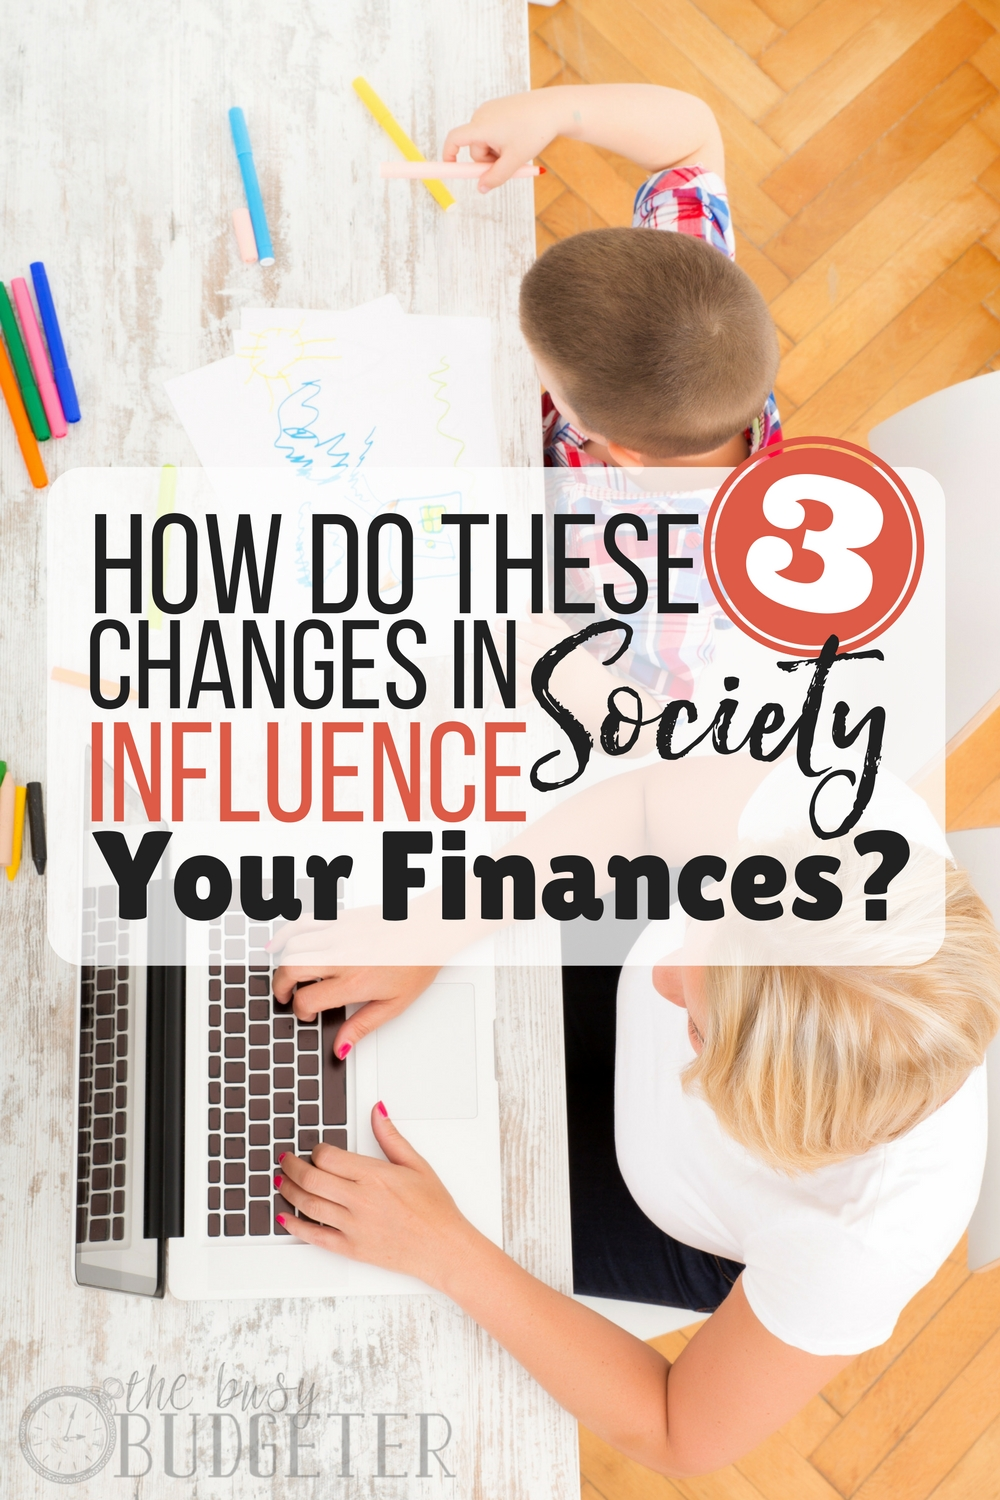 This is such an interesting article! It's great to know how changes in society are actually affecting your finances. Spoiler alert-- you will want to know these so you can make them work FOR you, your family, and your budget!